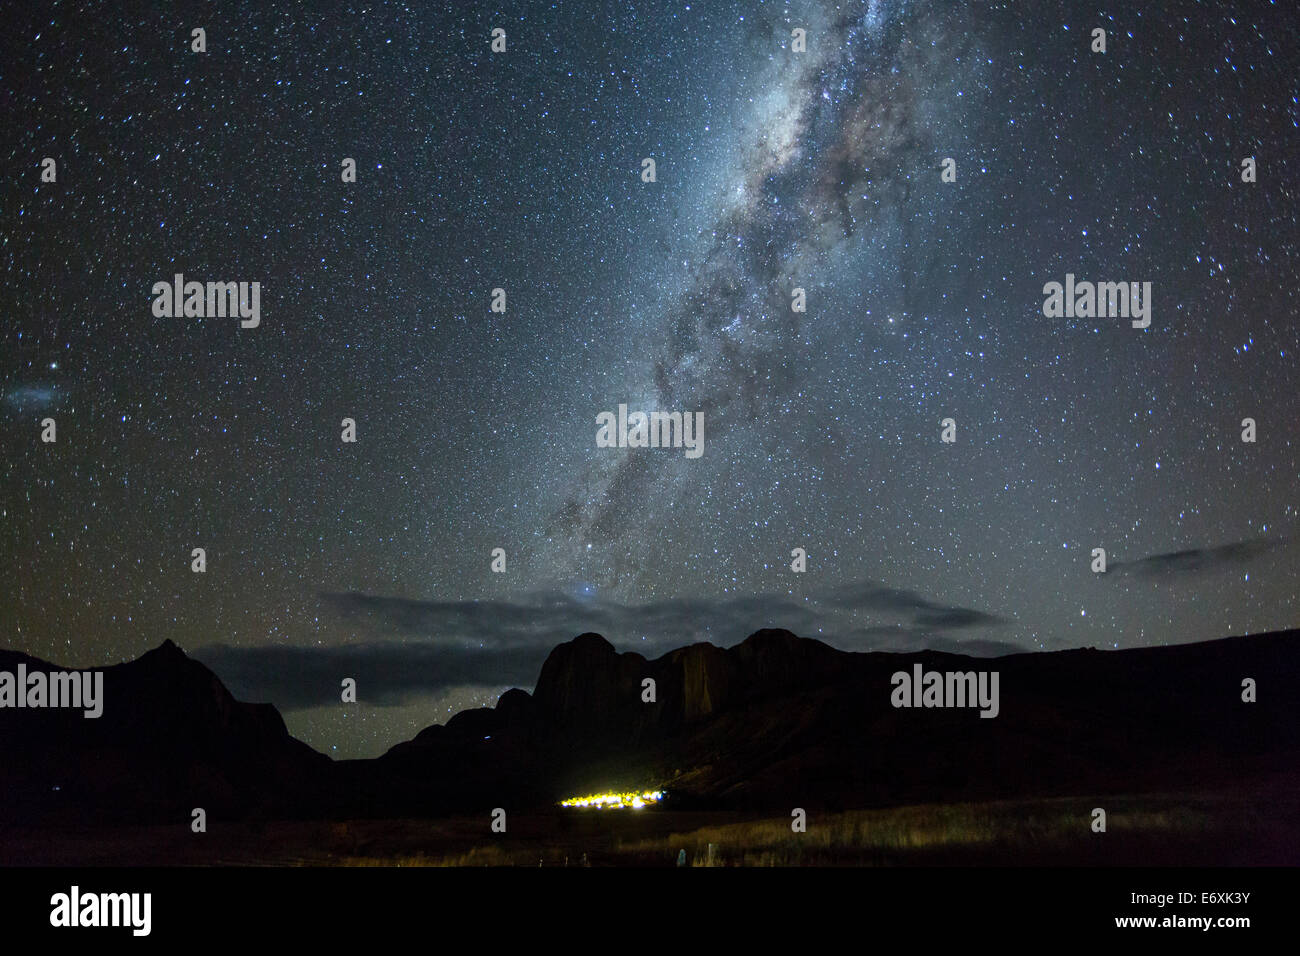 Southern starry Sky with milky way, over the Tsaranoro Mountain Range, South Madagascar, Africa - Stock Image